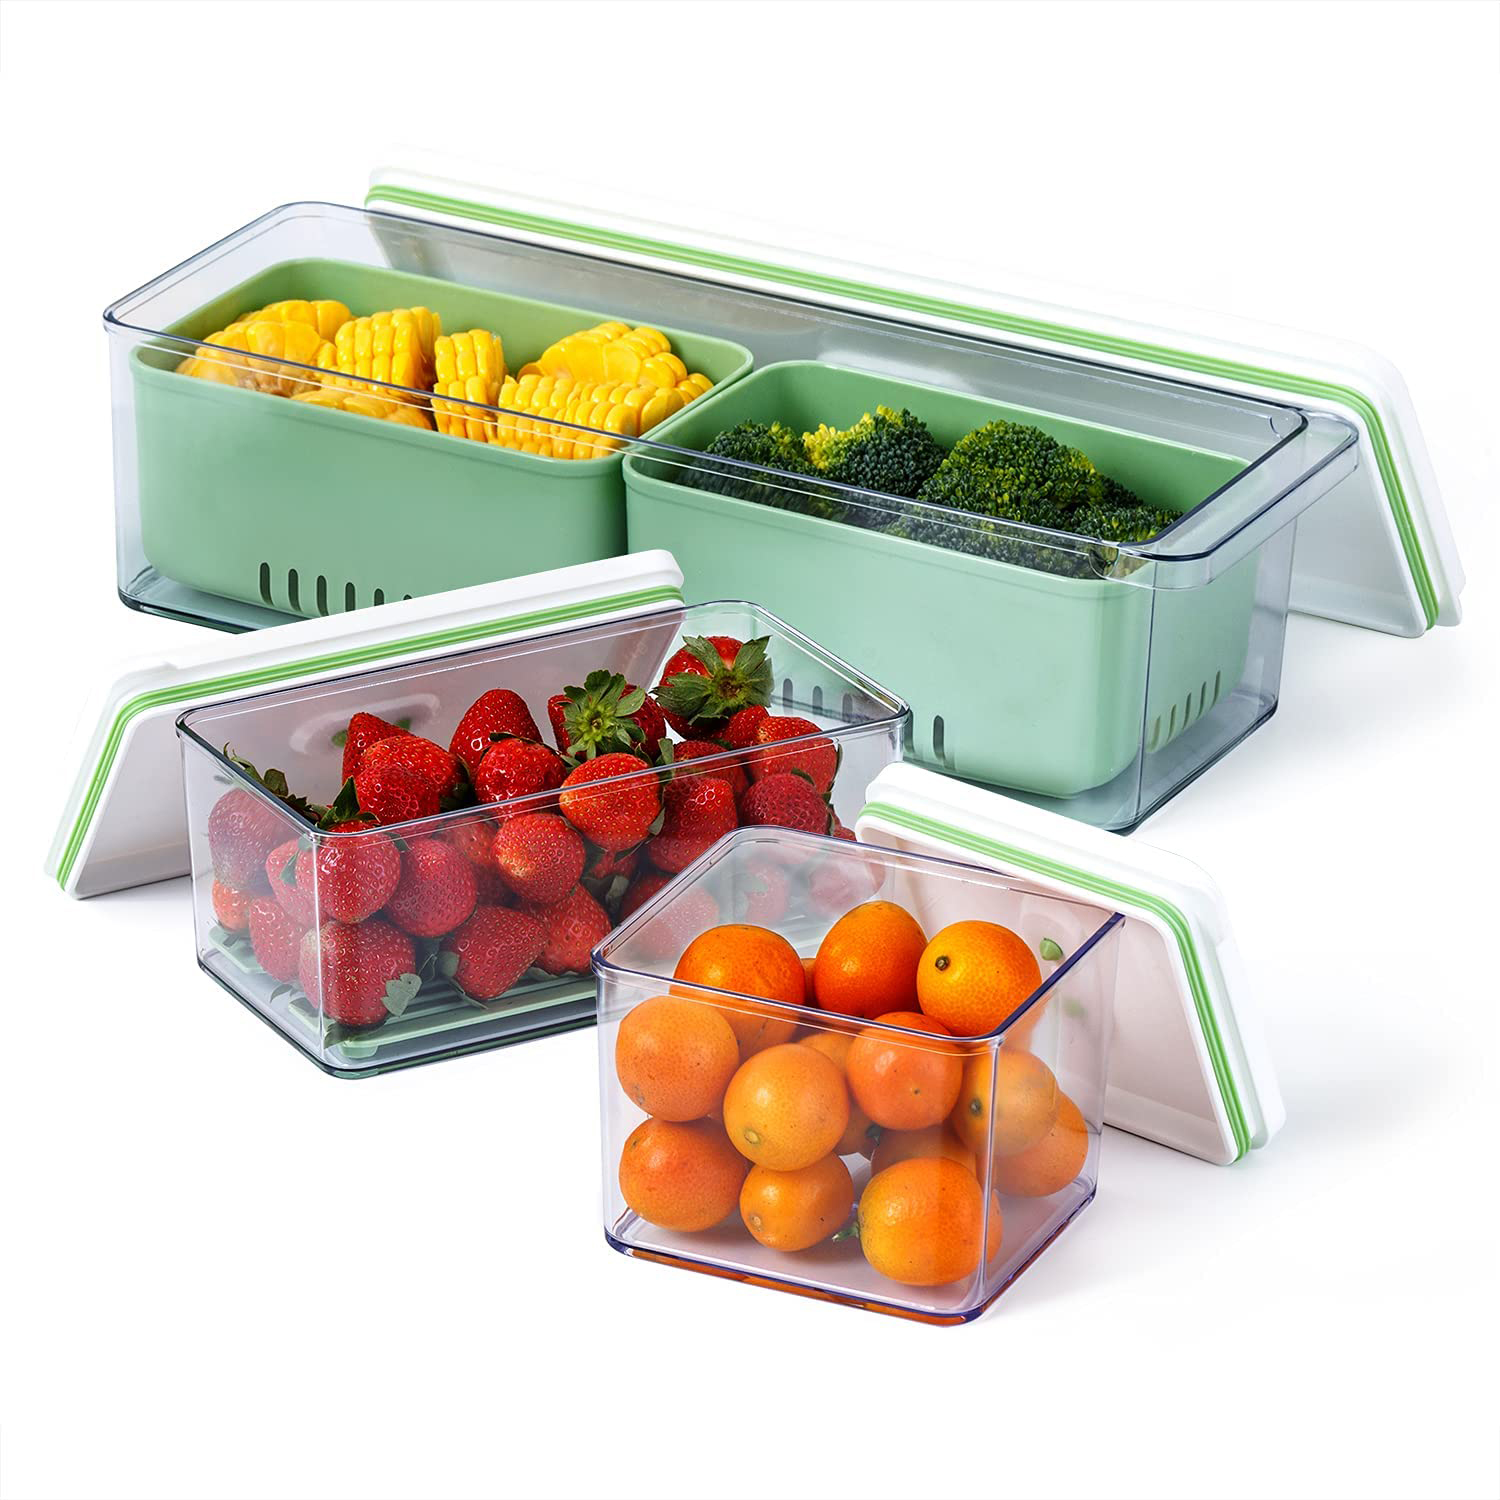 Lille Home Stackable Produce Saver